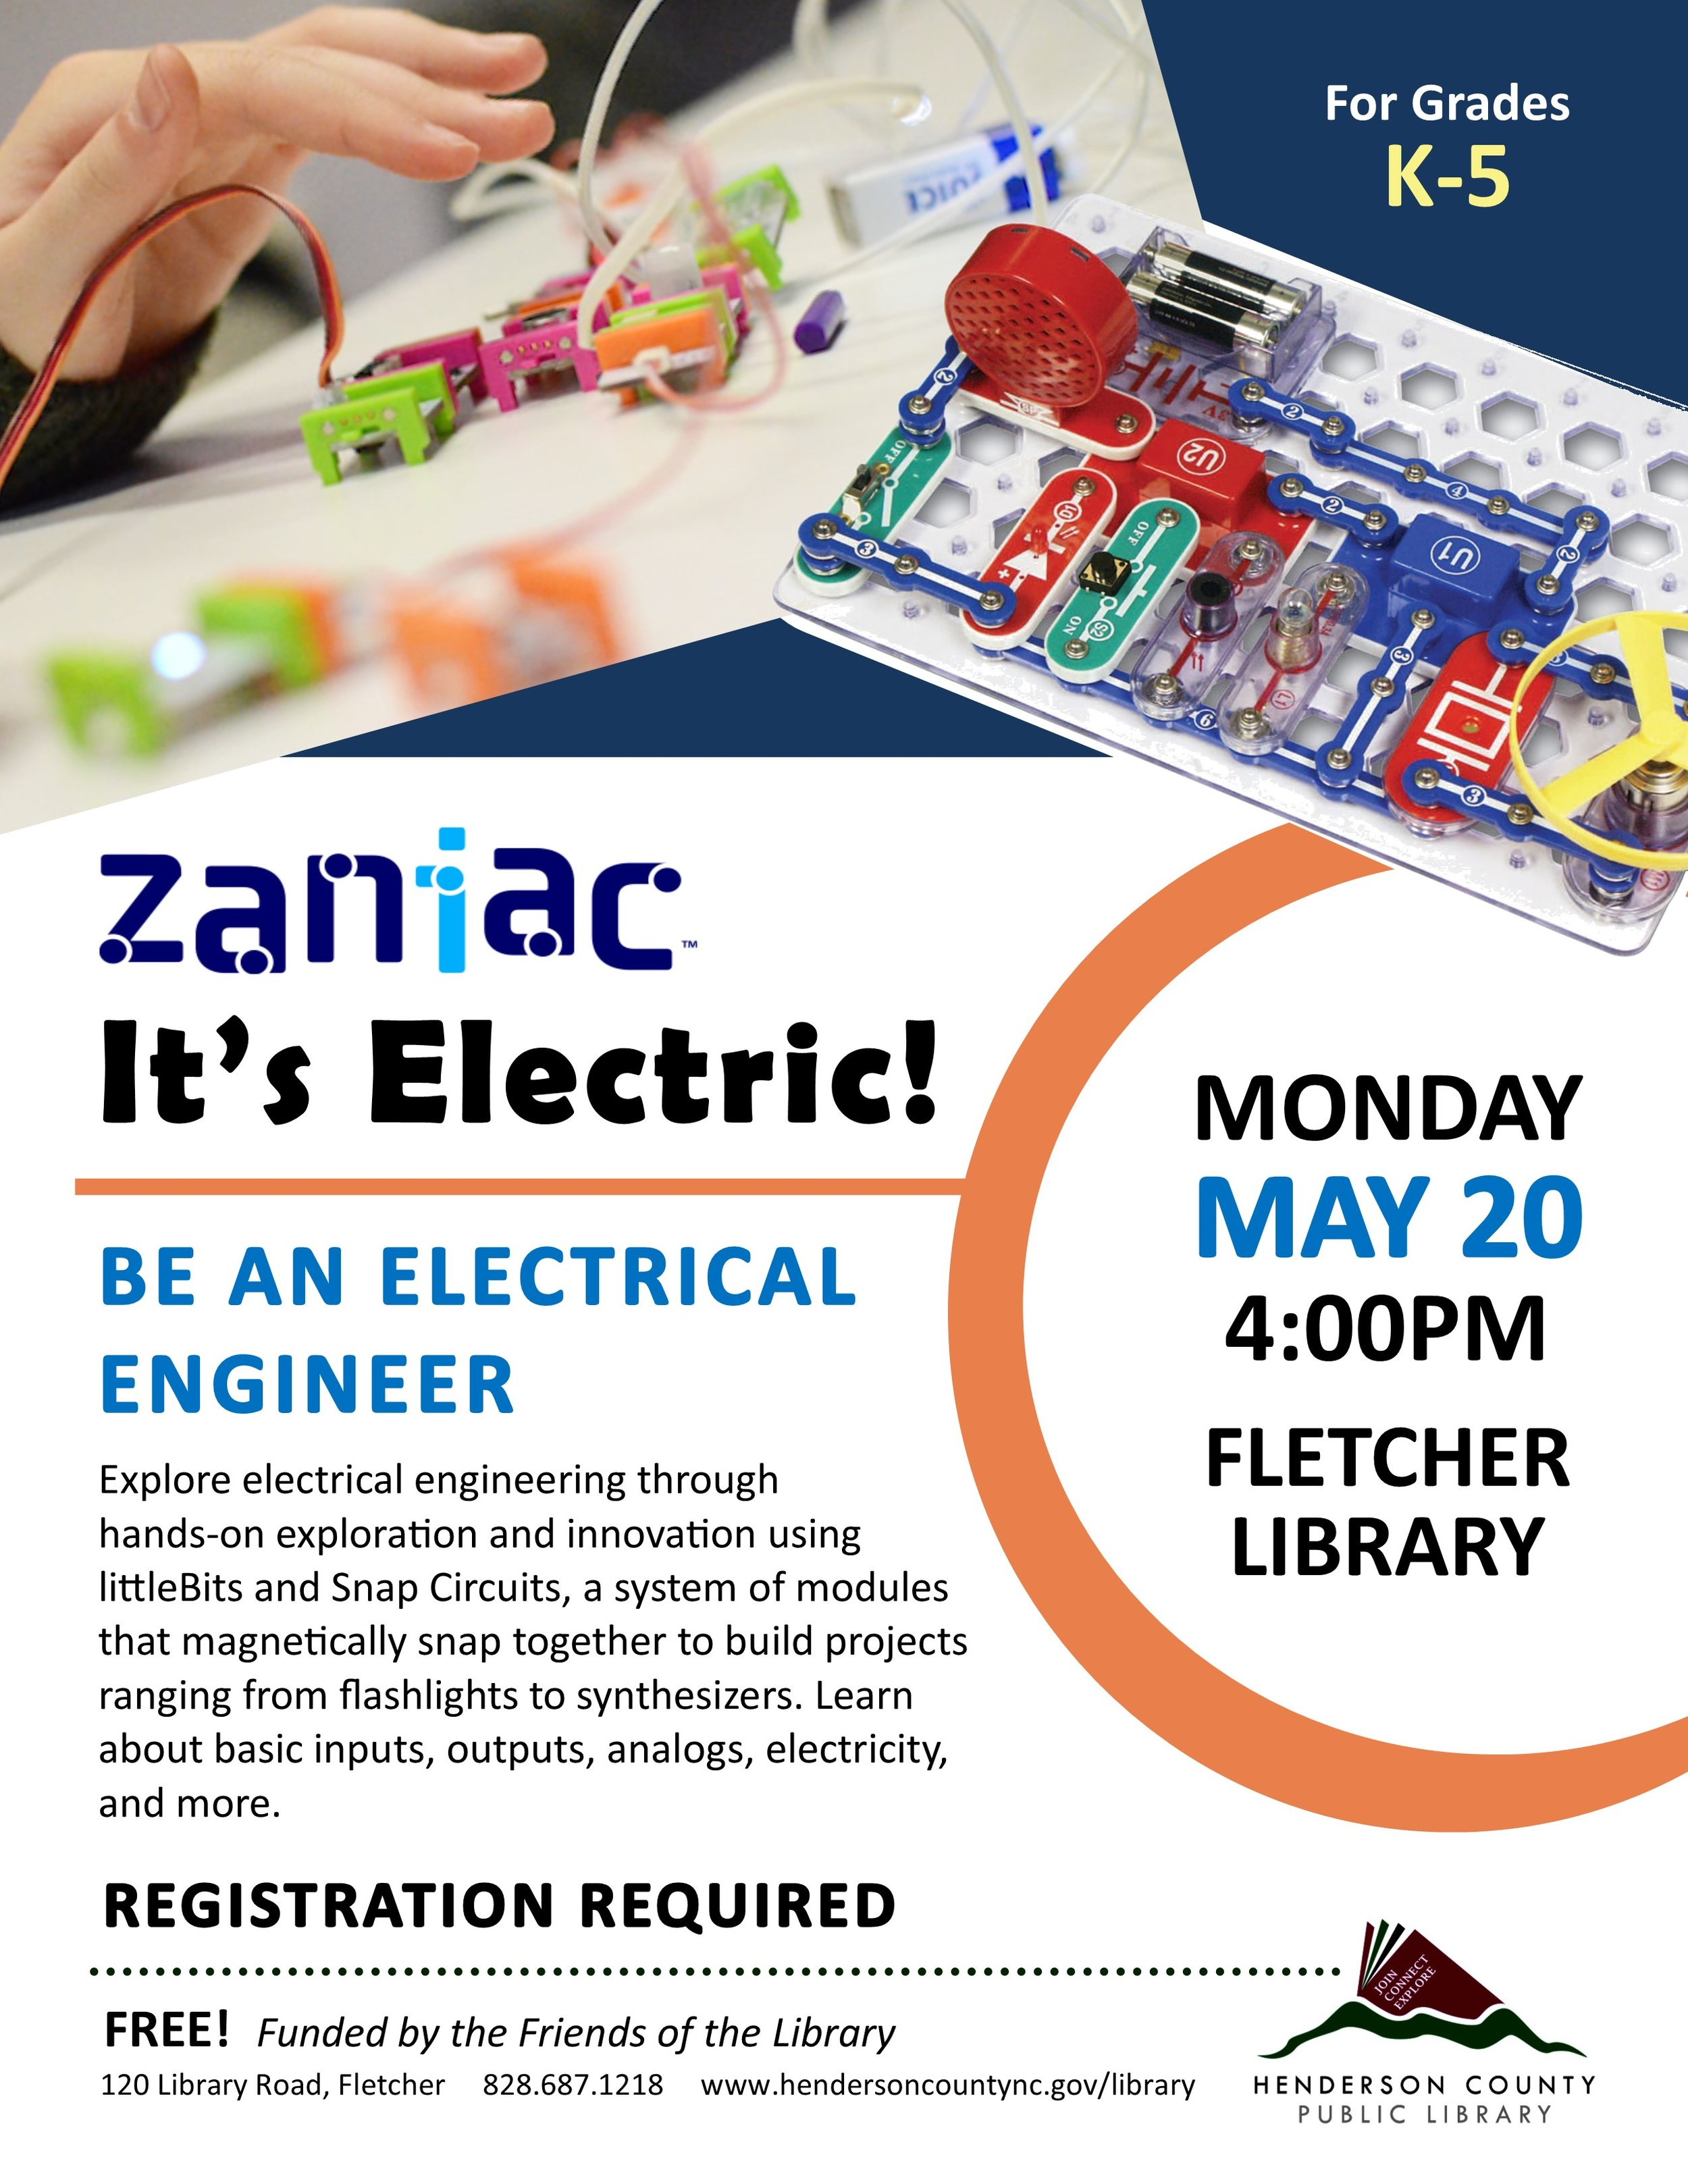 FL- Zaniac It's Electric.jpg